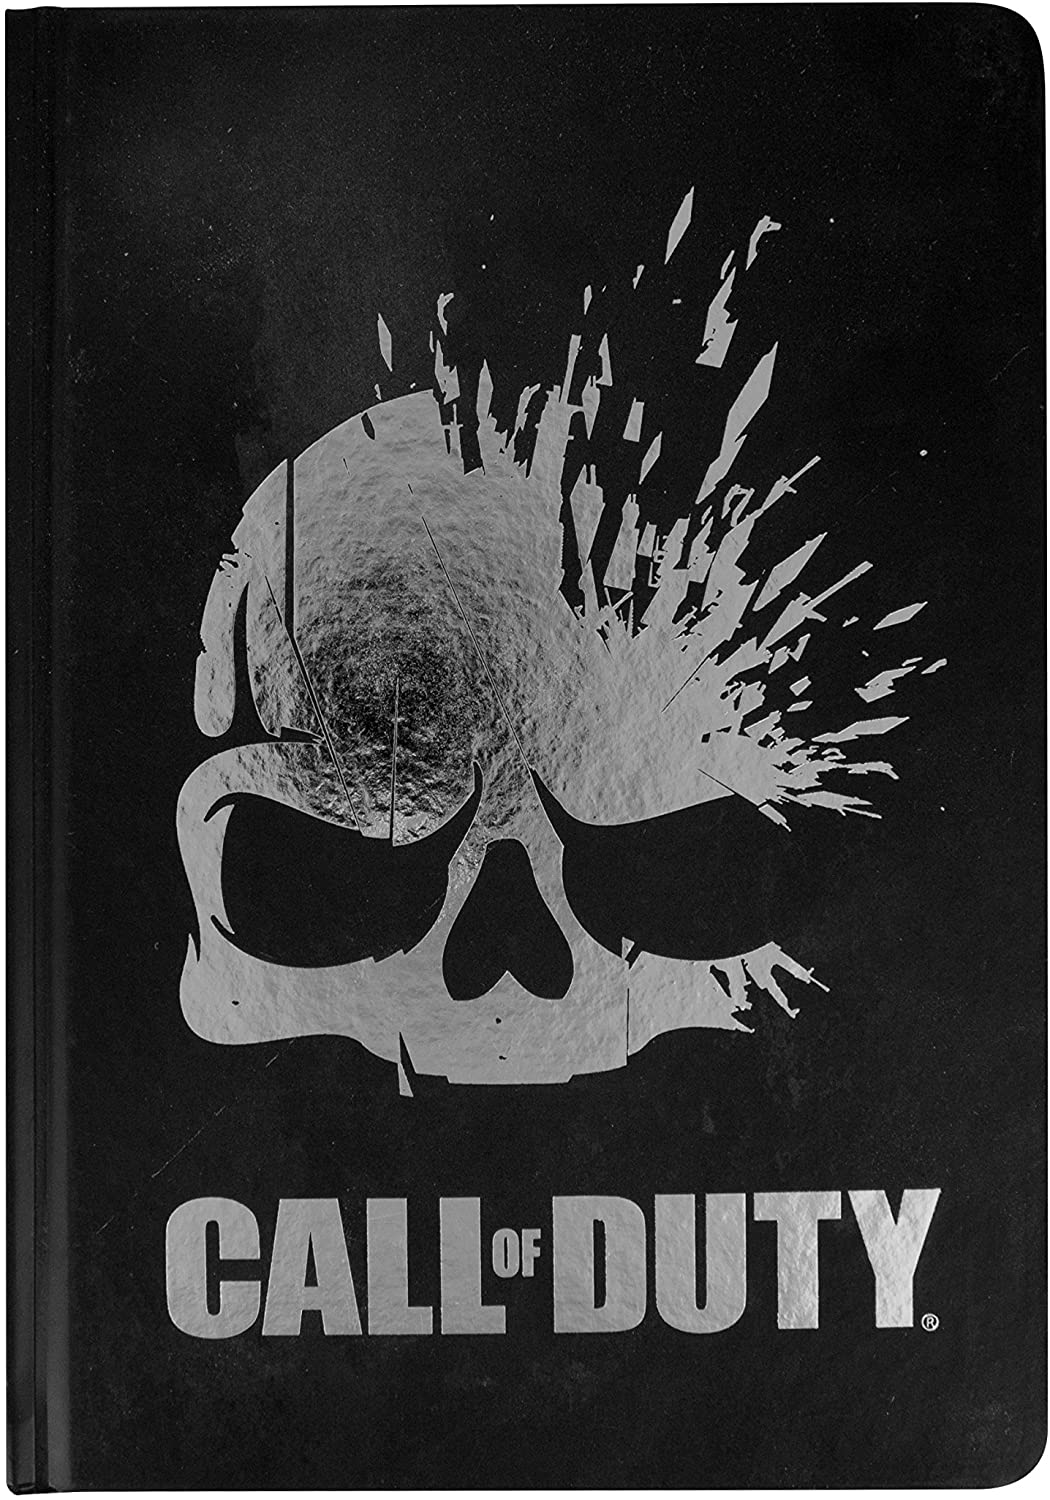 A black notebook emblazoned with the Call of Duty logo across the front cover.